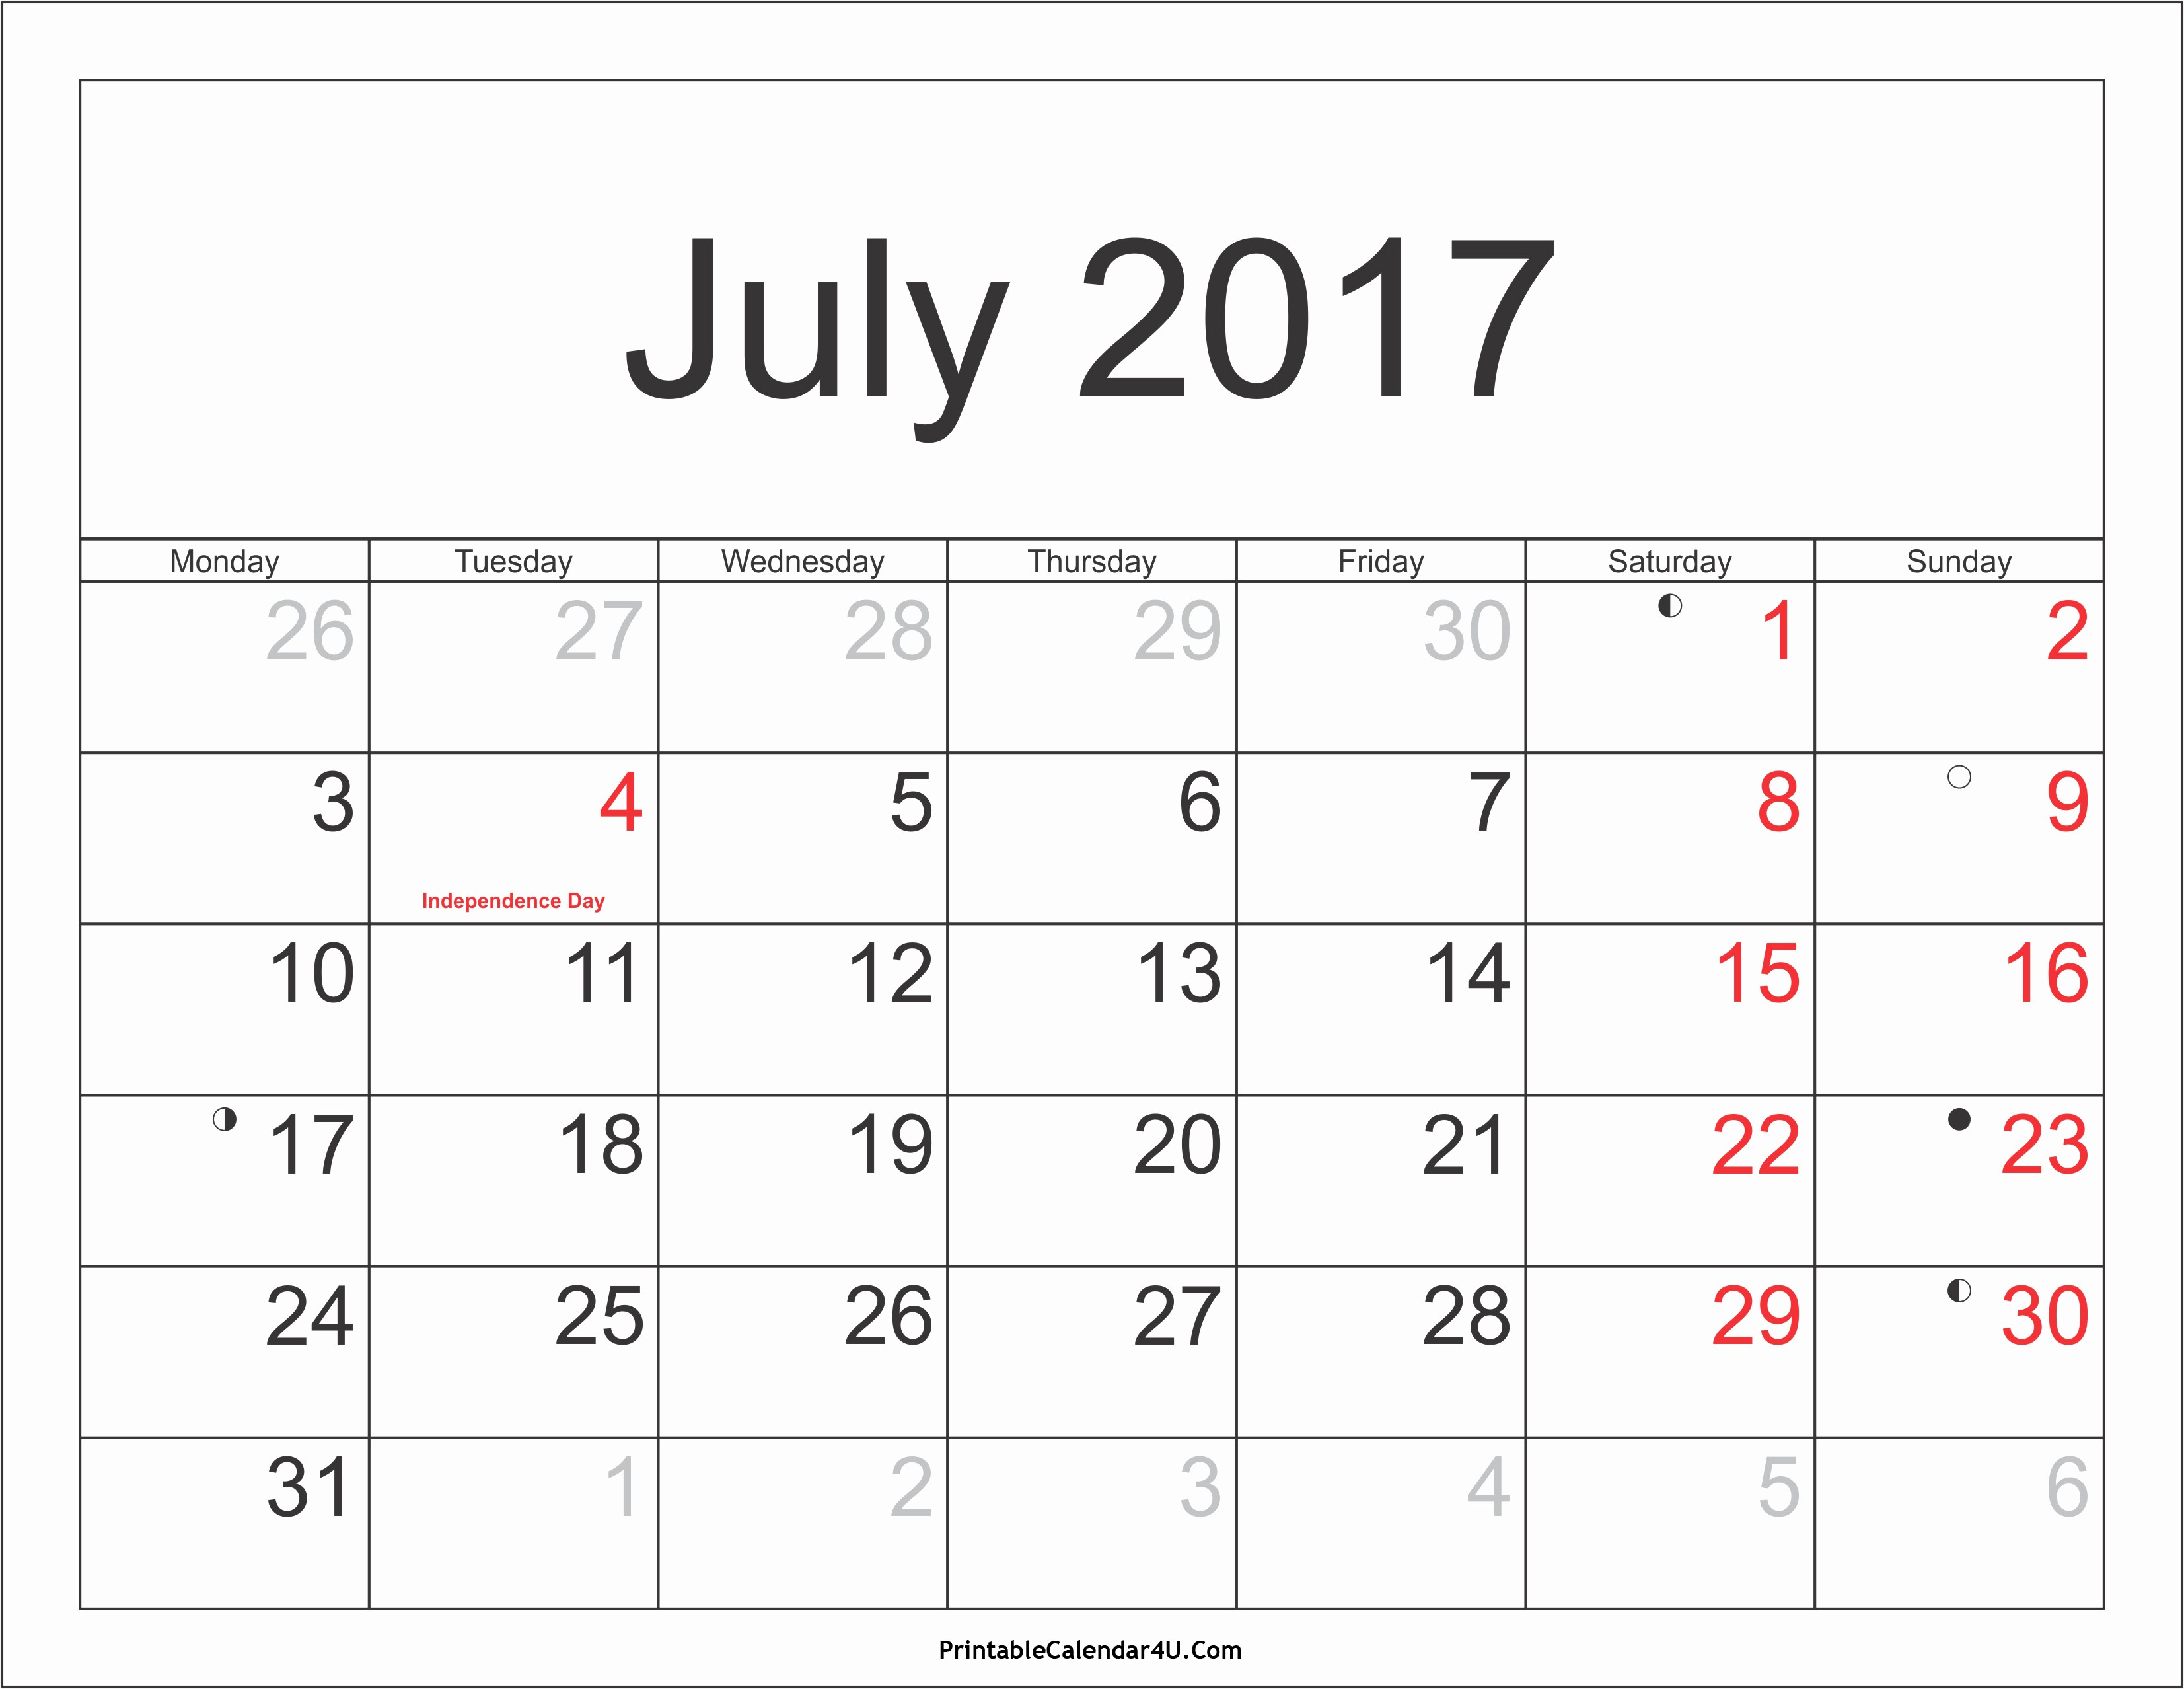 2017 Weekly Calendar with Holidays Luxury July 2017 Calendar Printable with Holidays